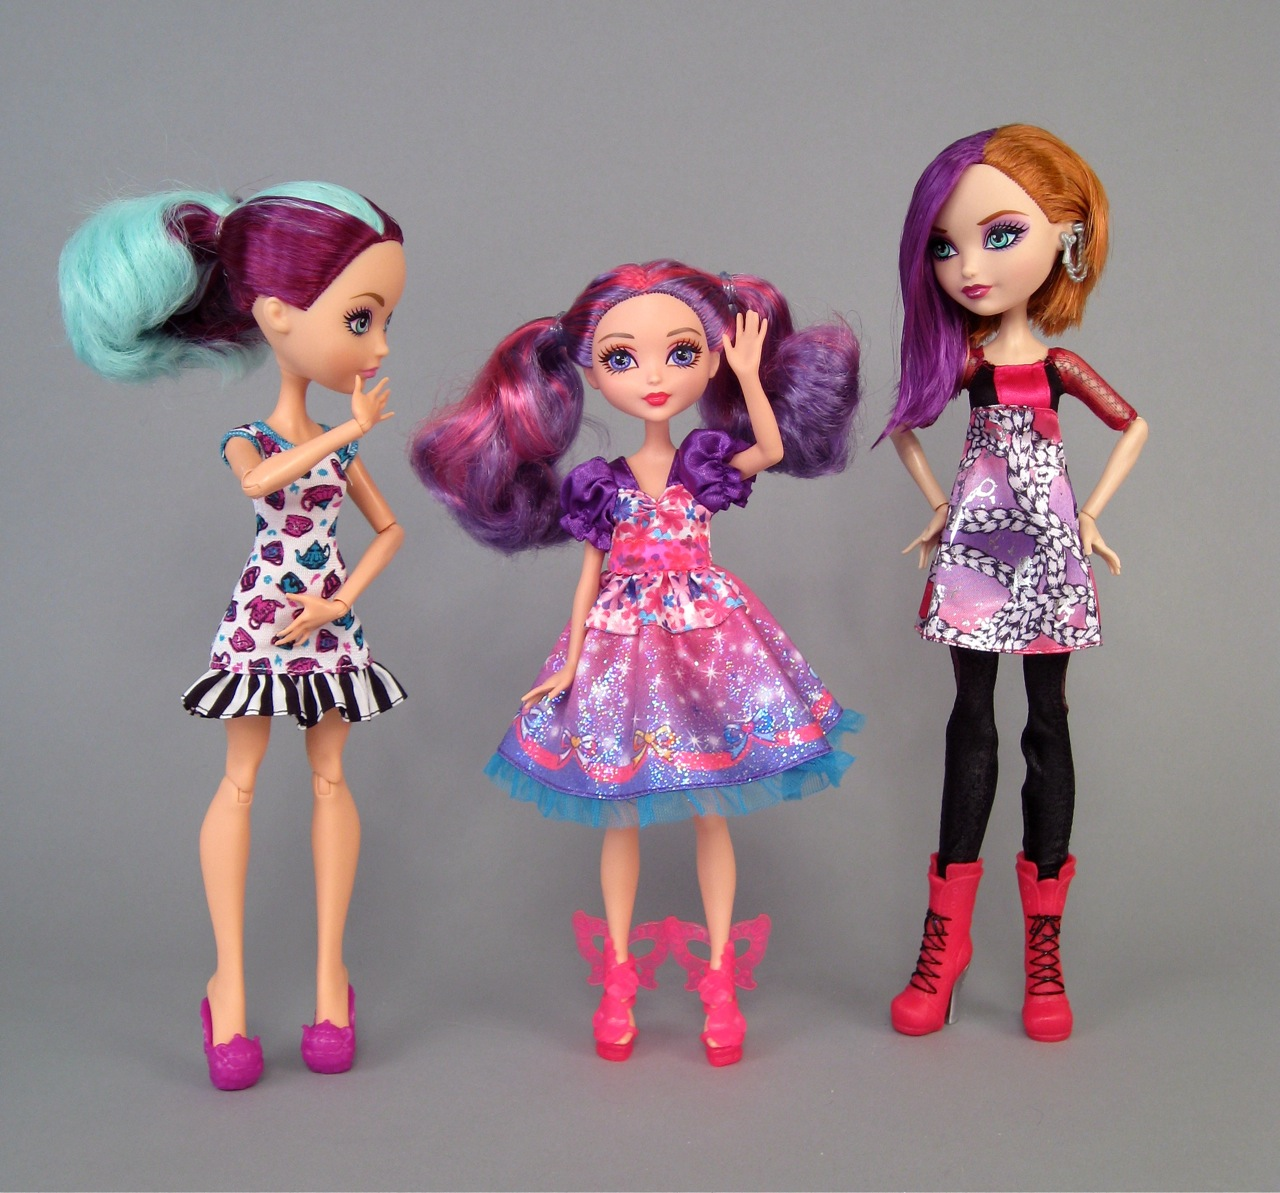 Barbie s princess malucia flanked by madeline hatter left and poppy o hair right